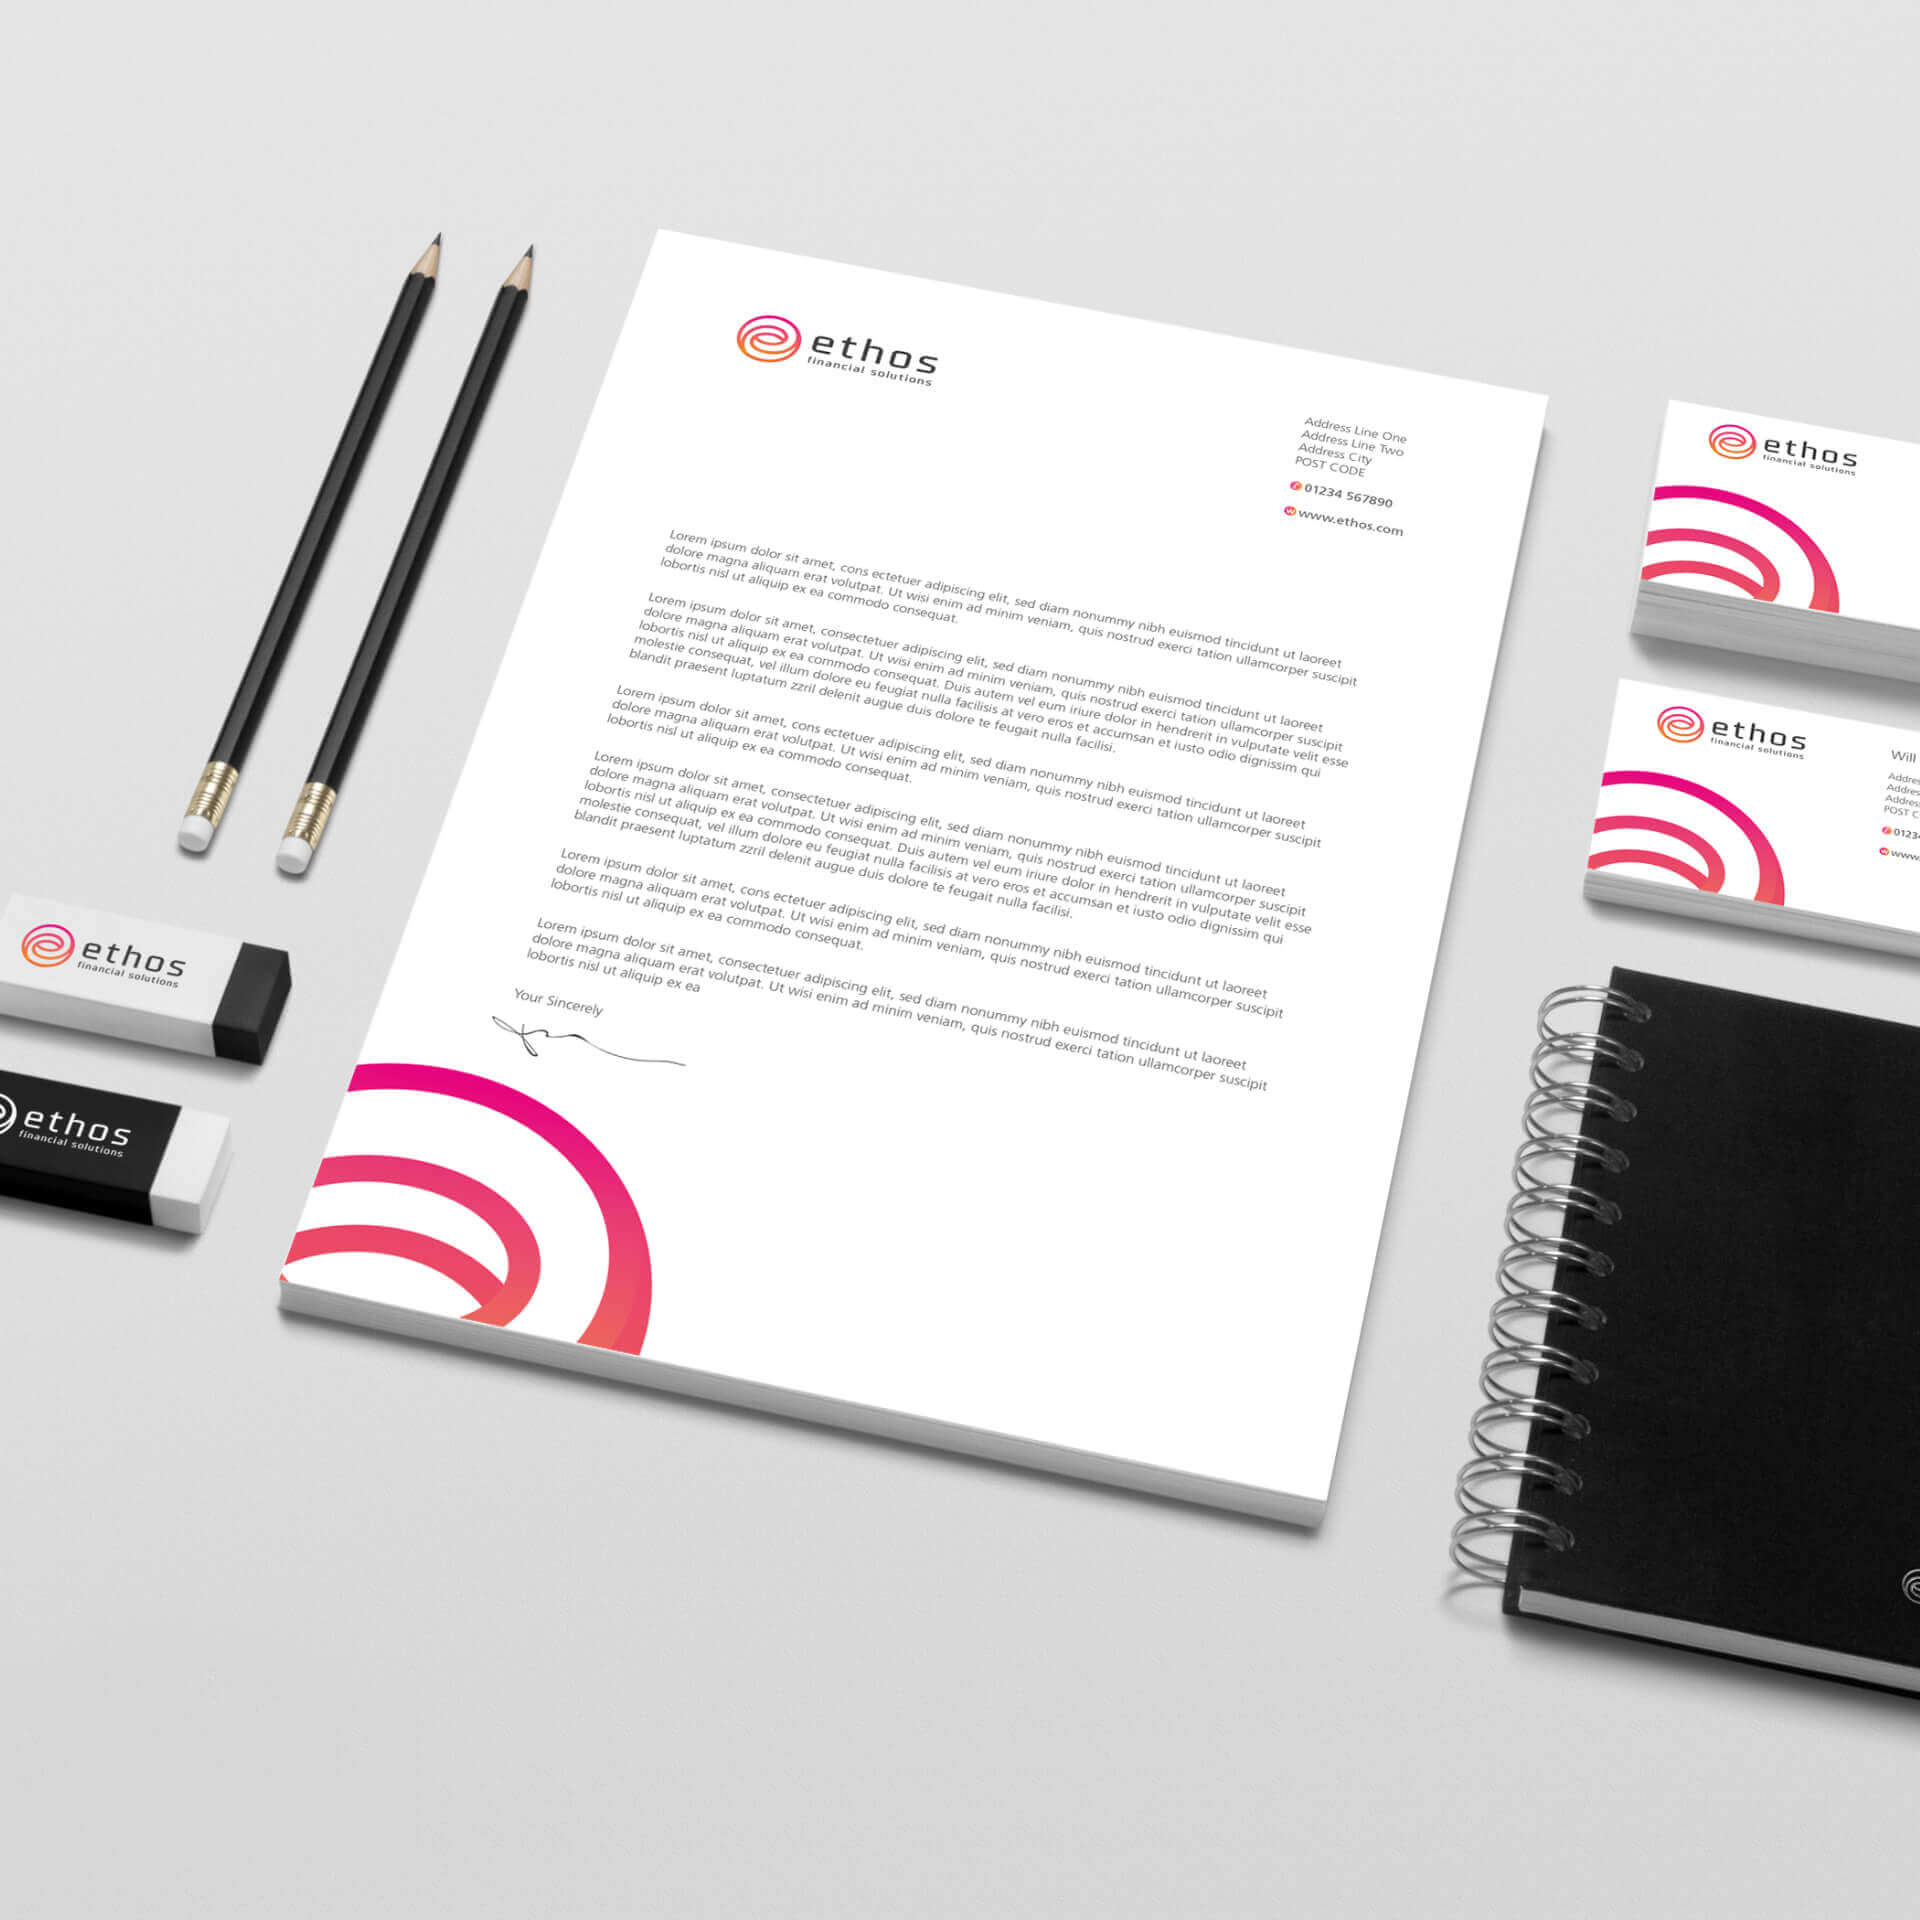 Ethos Branded Stationary